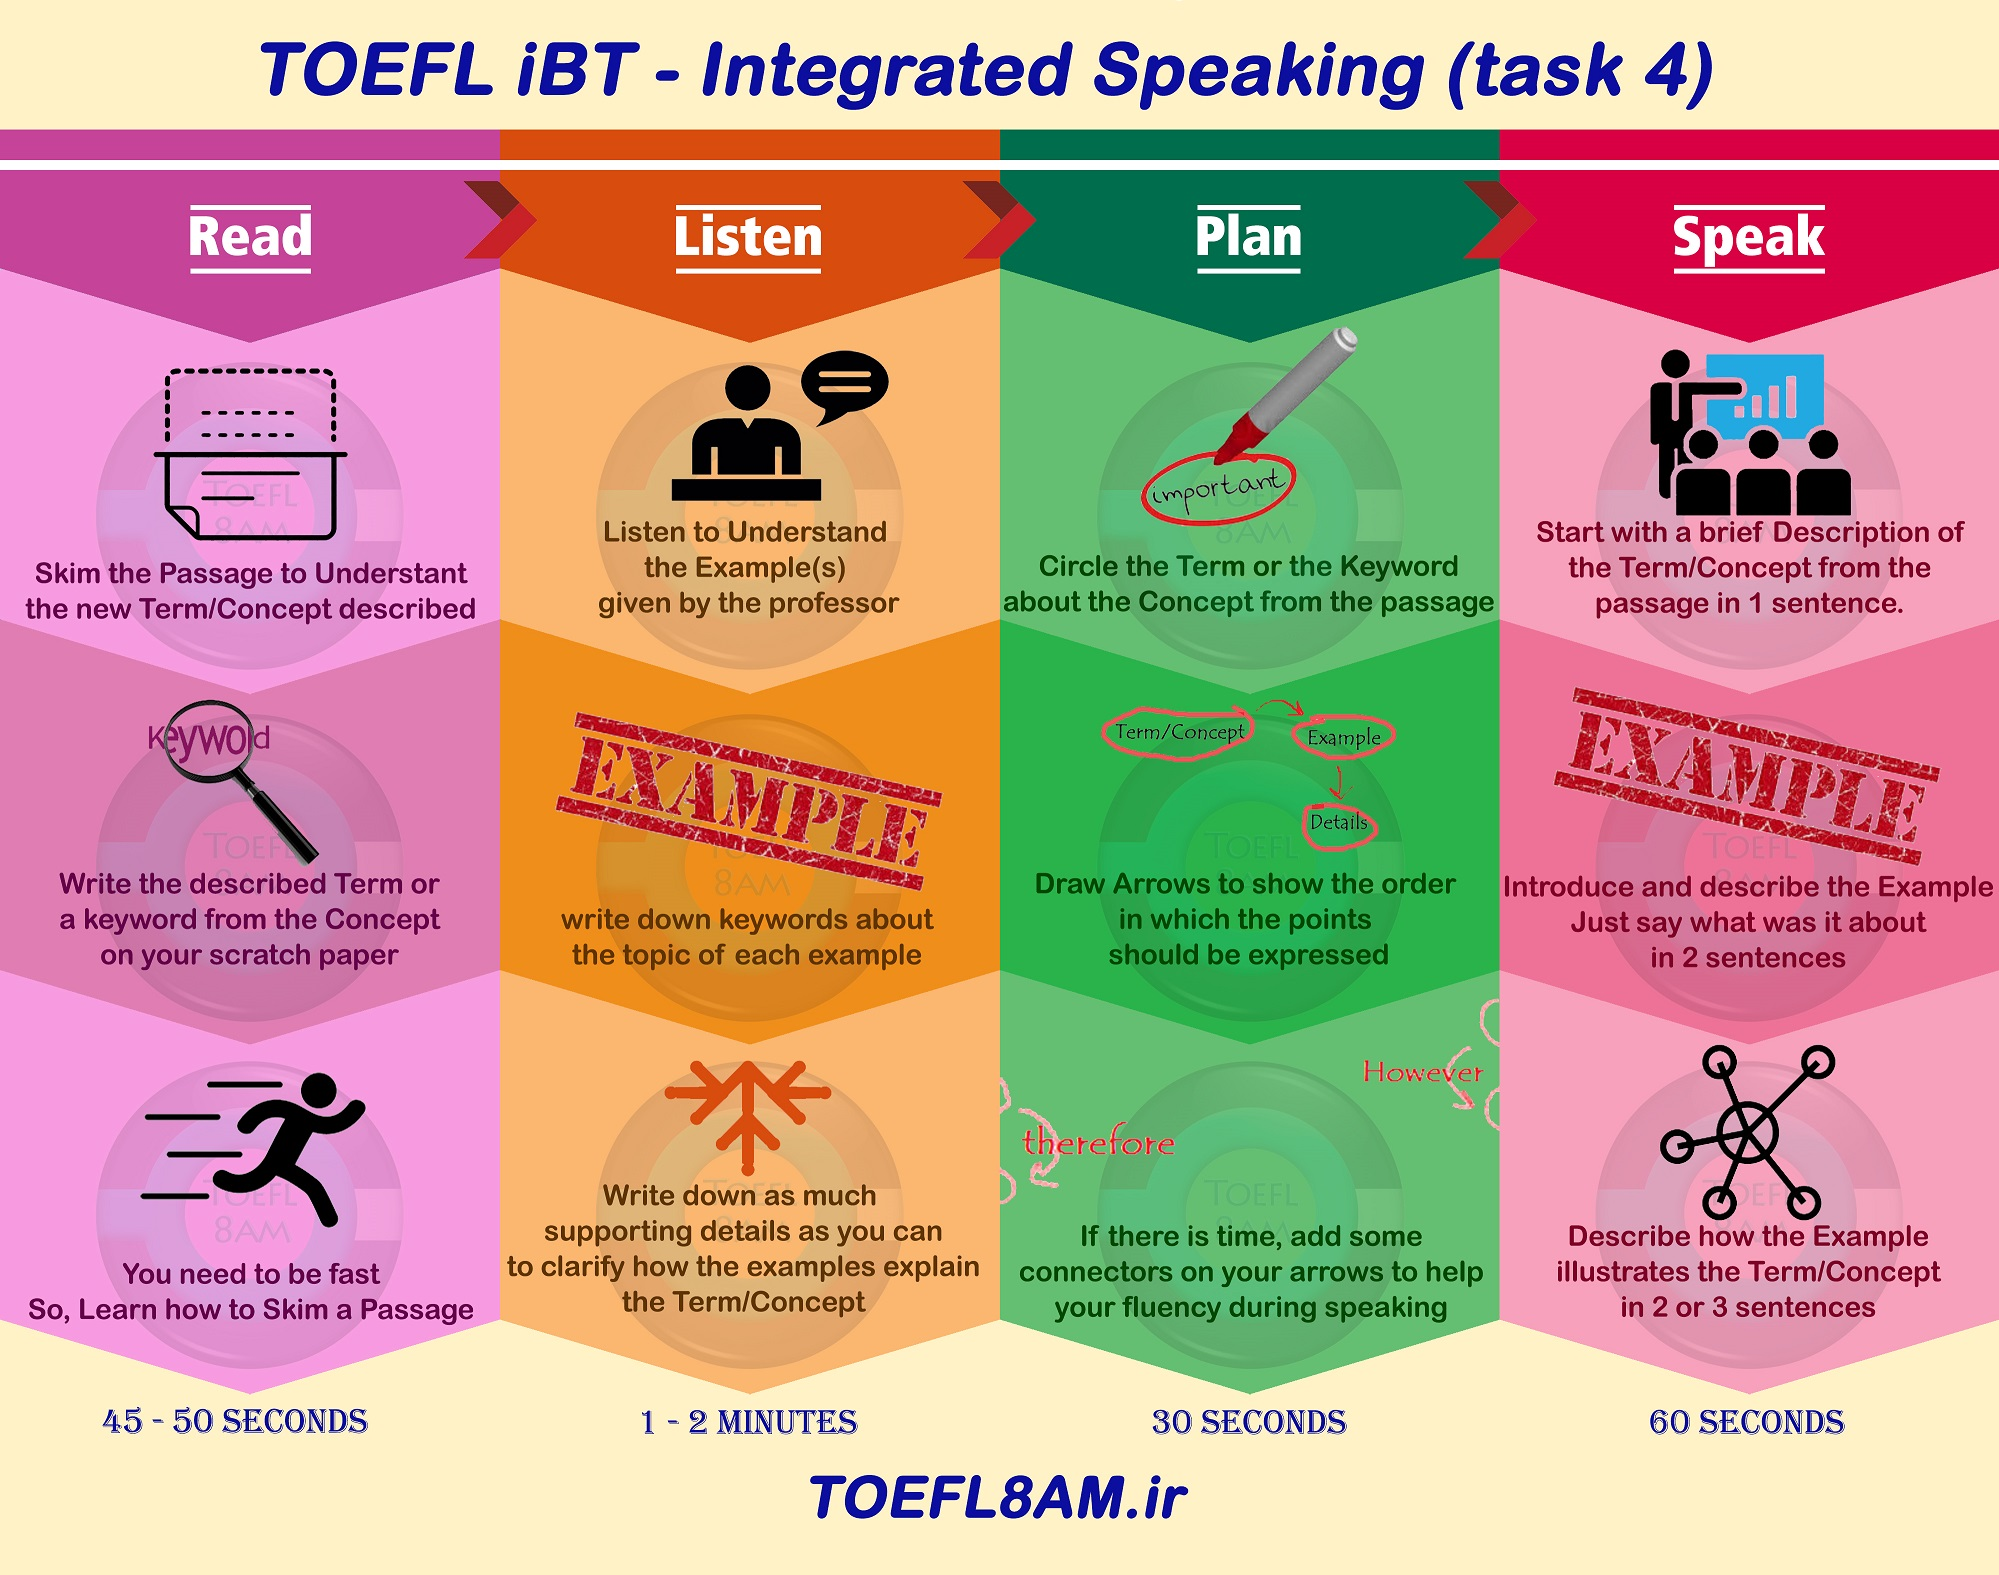 success in TOEFL iBT Speaking task 4